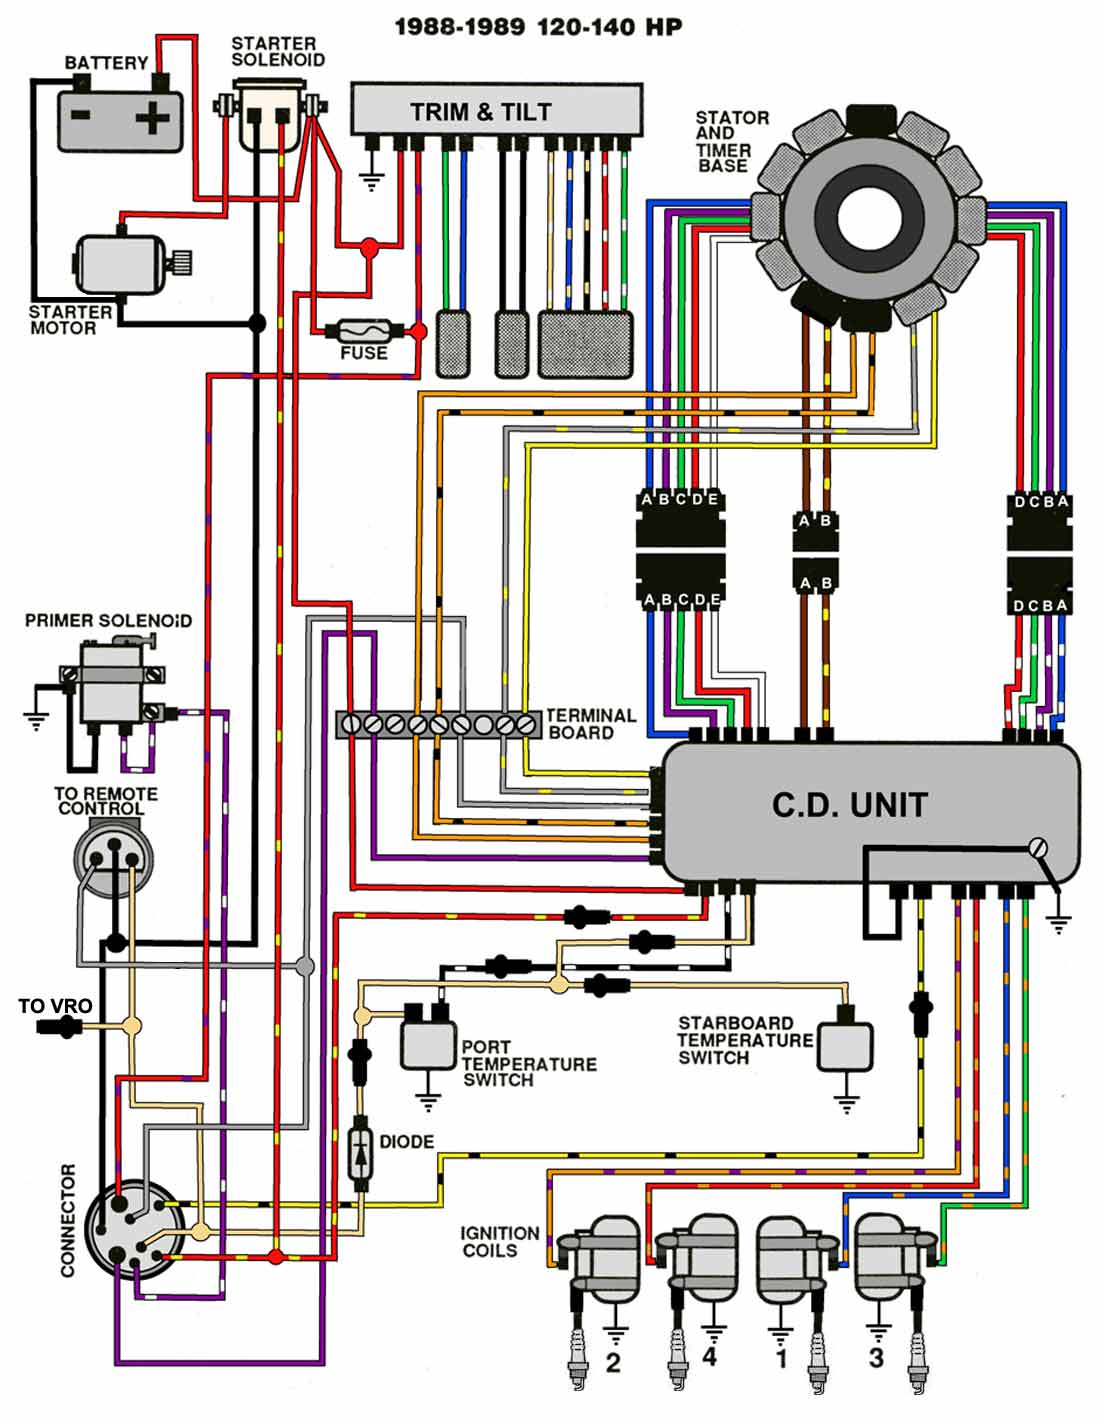 1988_89_120_140 maxrules wiring diagram wiring color standards \u2022 wiring diagrams 35 Evinrude Wiring Diagram at suagrazia.org